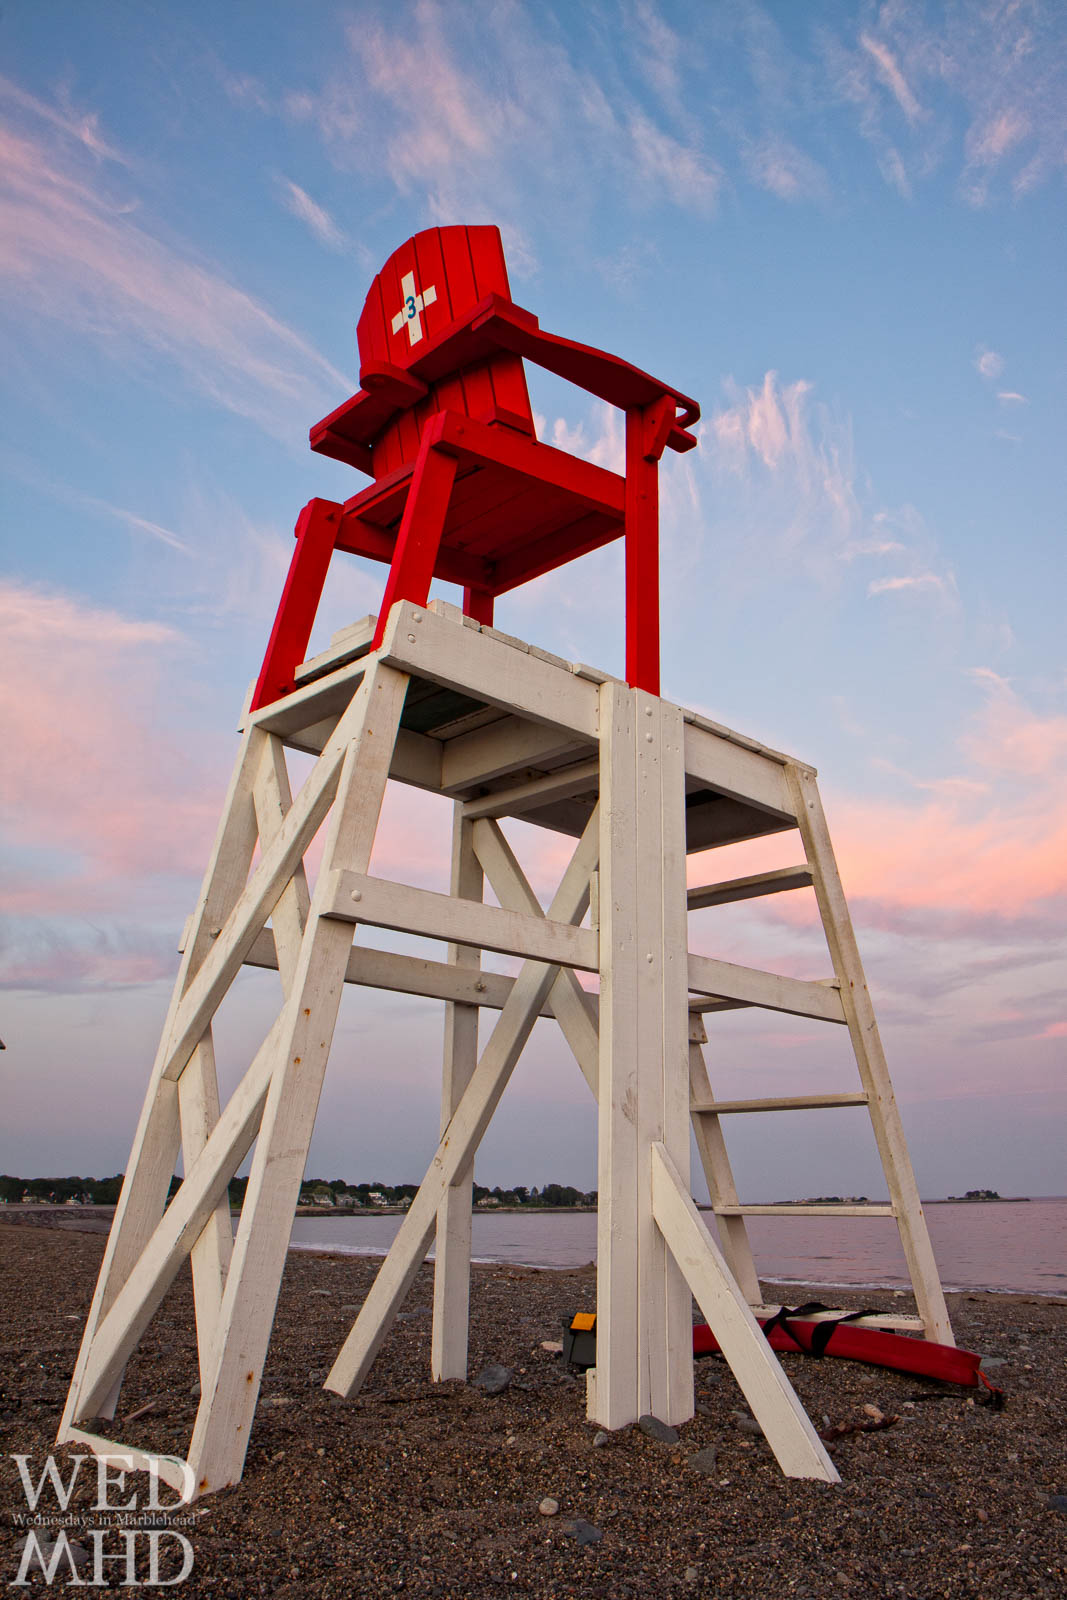 Lifeguard Chairs on Devereux Beach